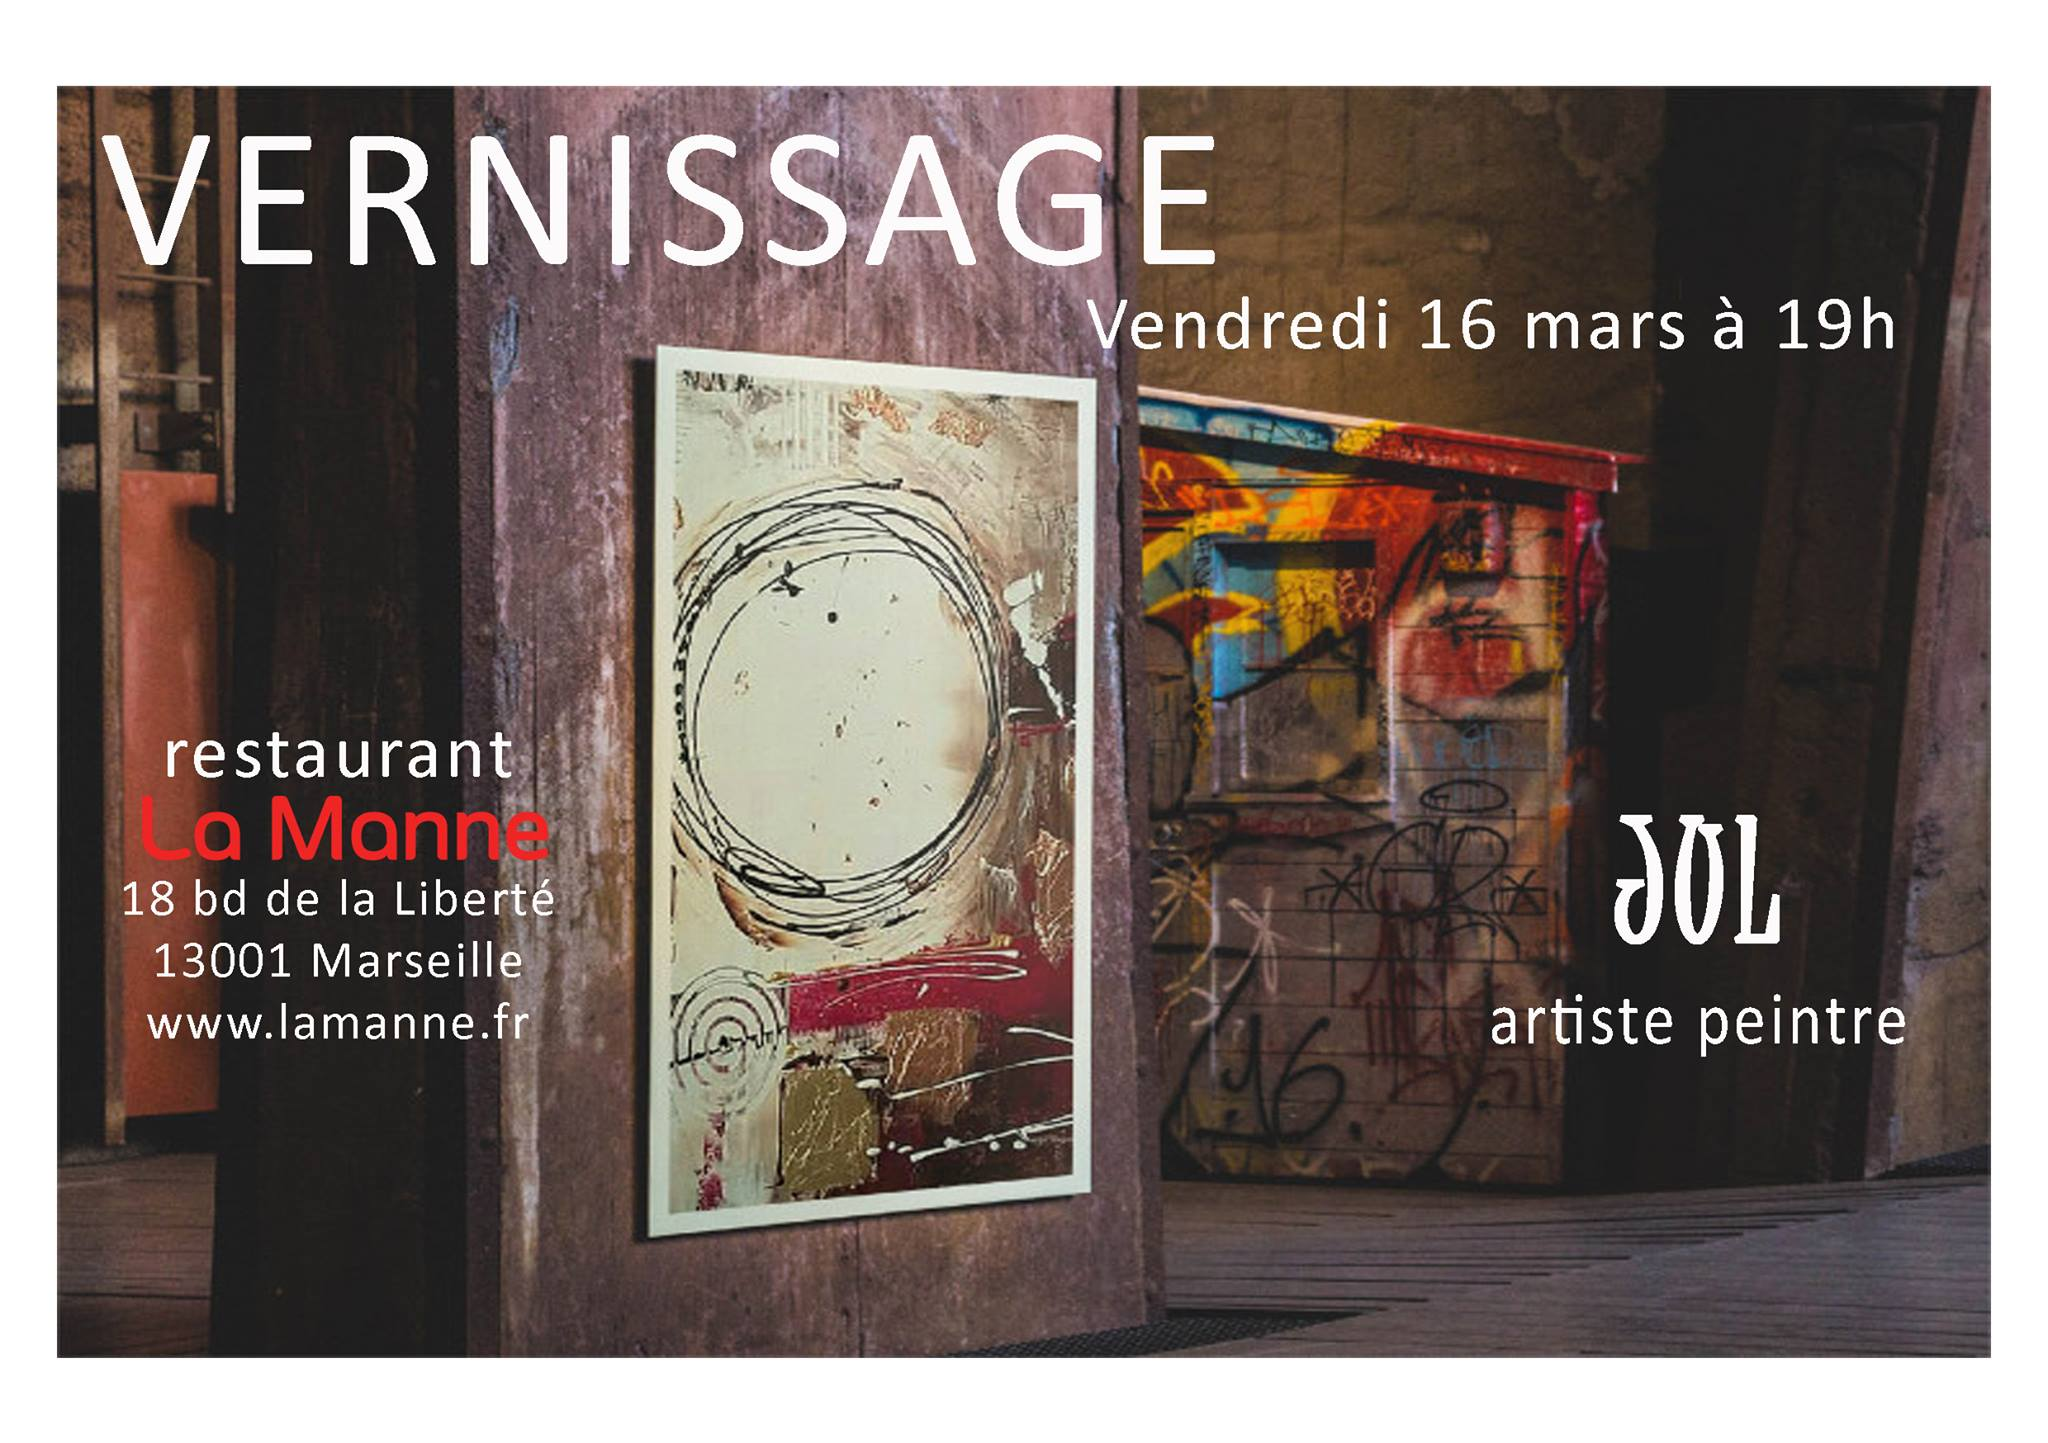 vernissage jul artiste peintre | tarpin bien